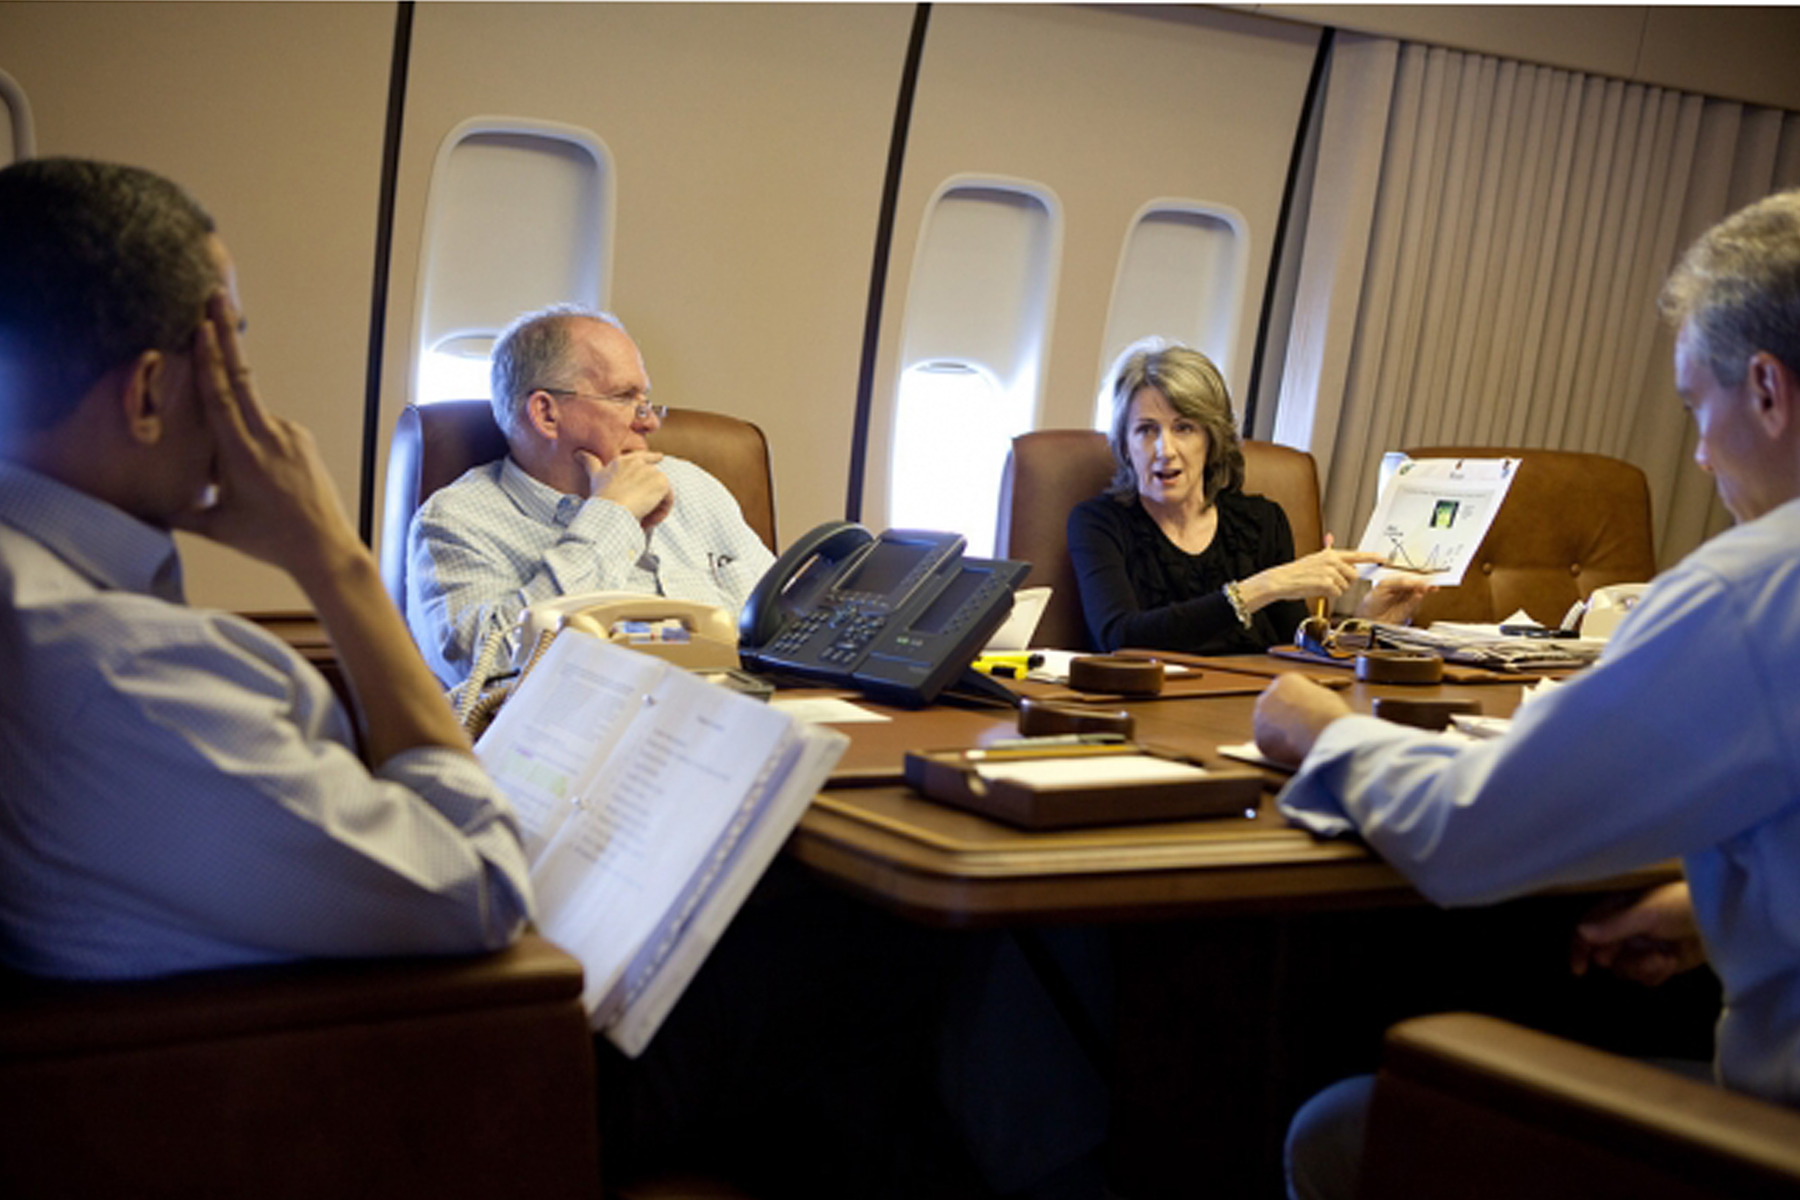 air force 1 office. File:Obama And Others Air Force One To BP Oil Spill.jpg 1 Office